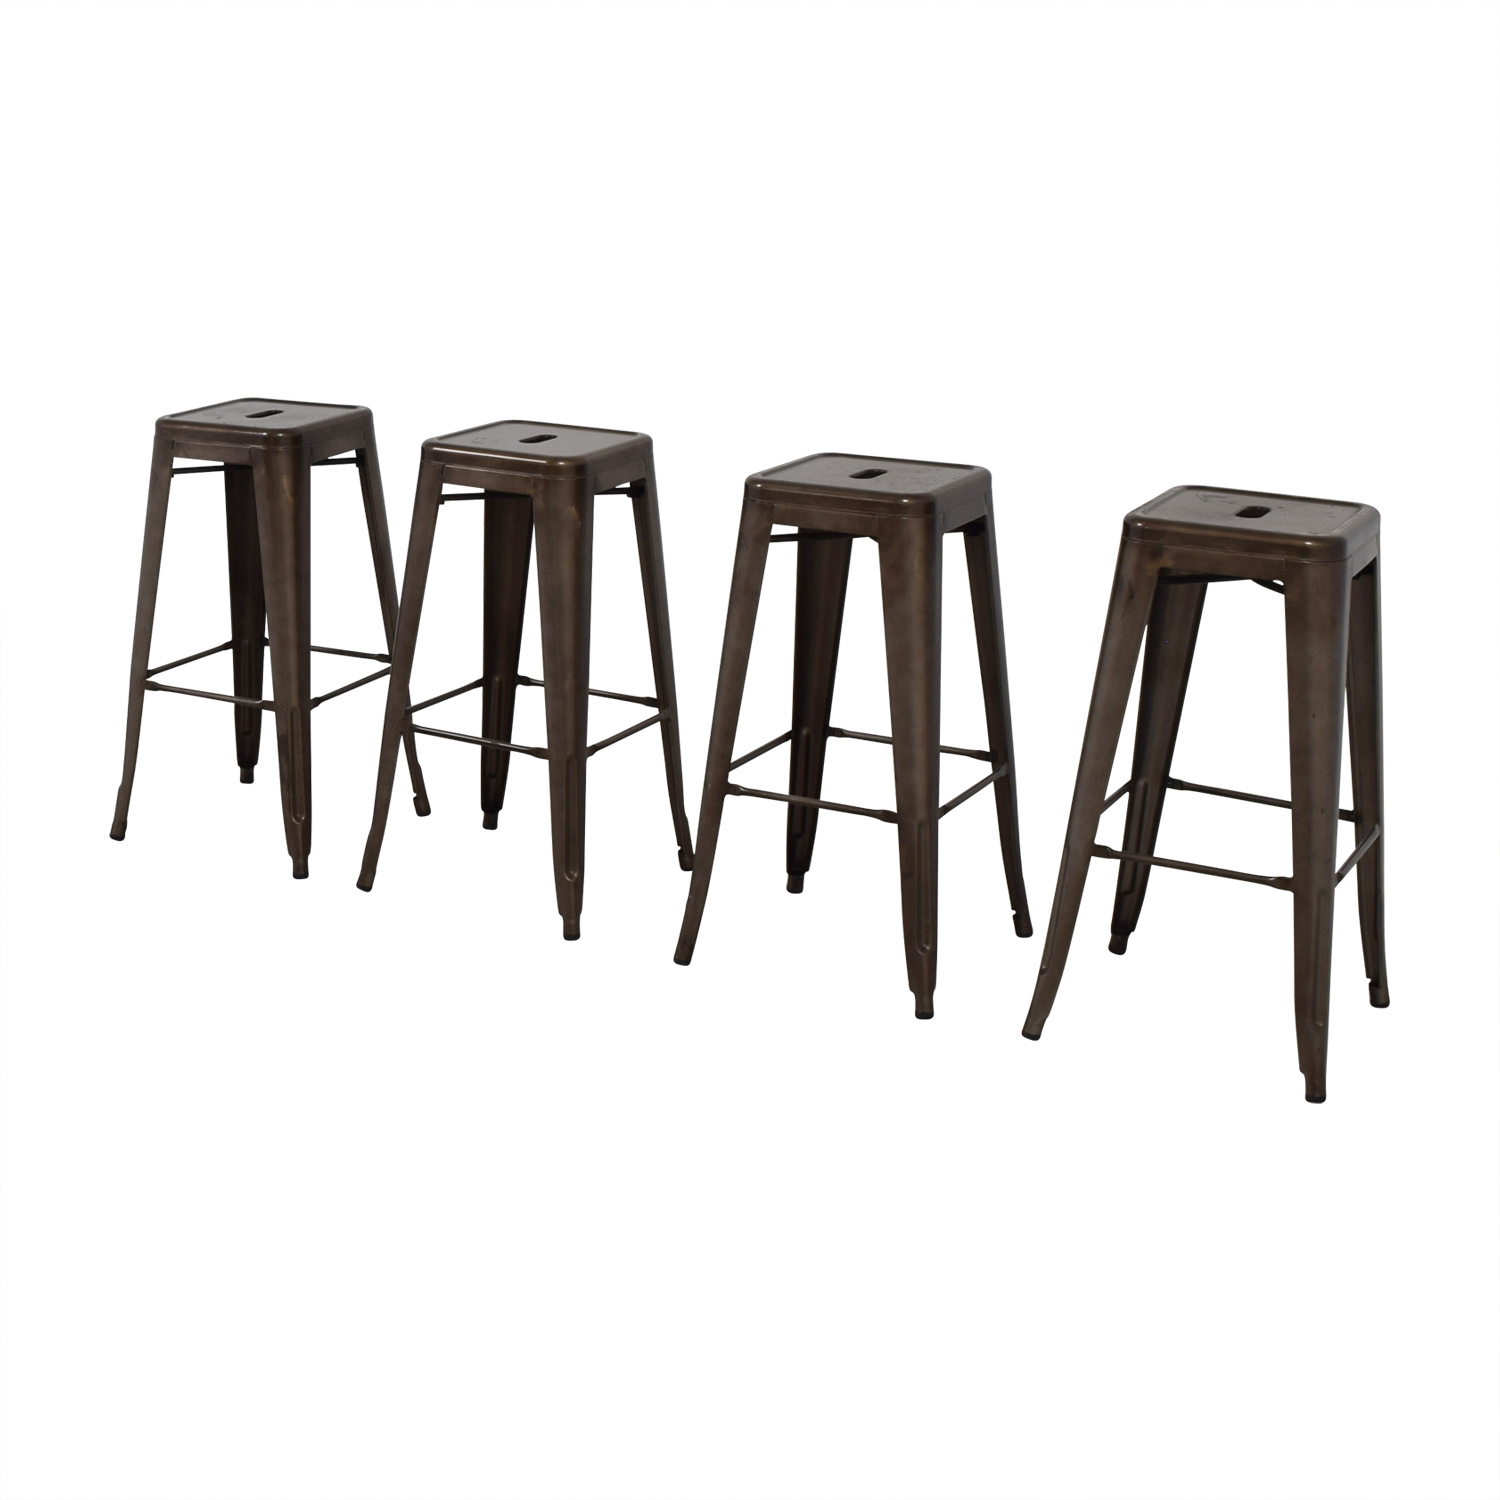 Tabouret Style Industrial Rustic Distressed Metal Bar Stools Chairs